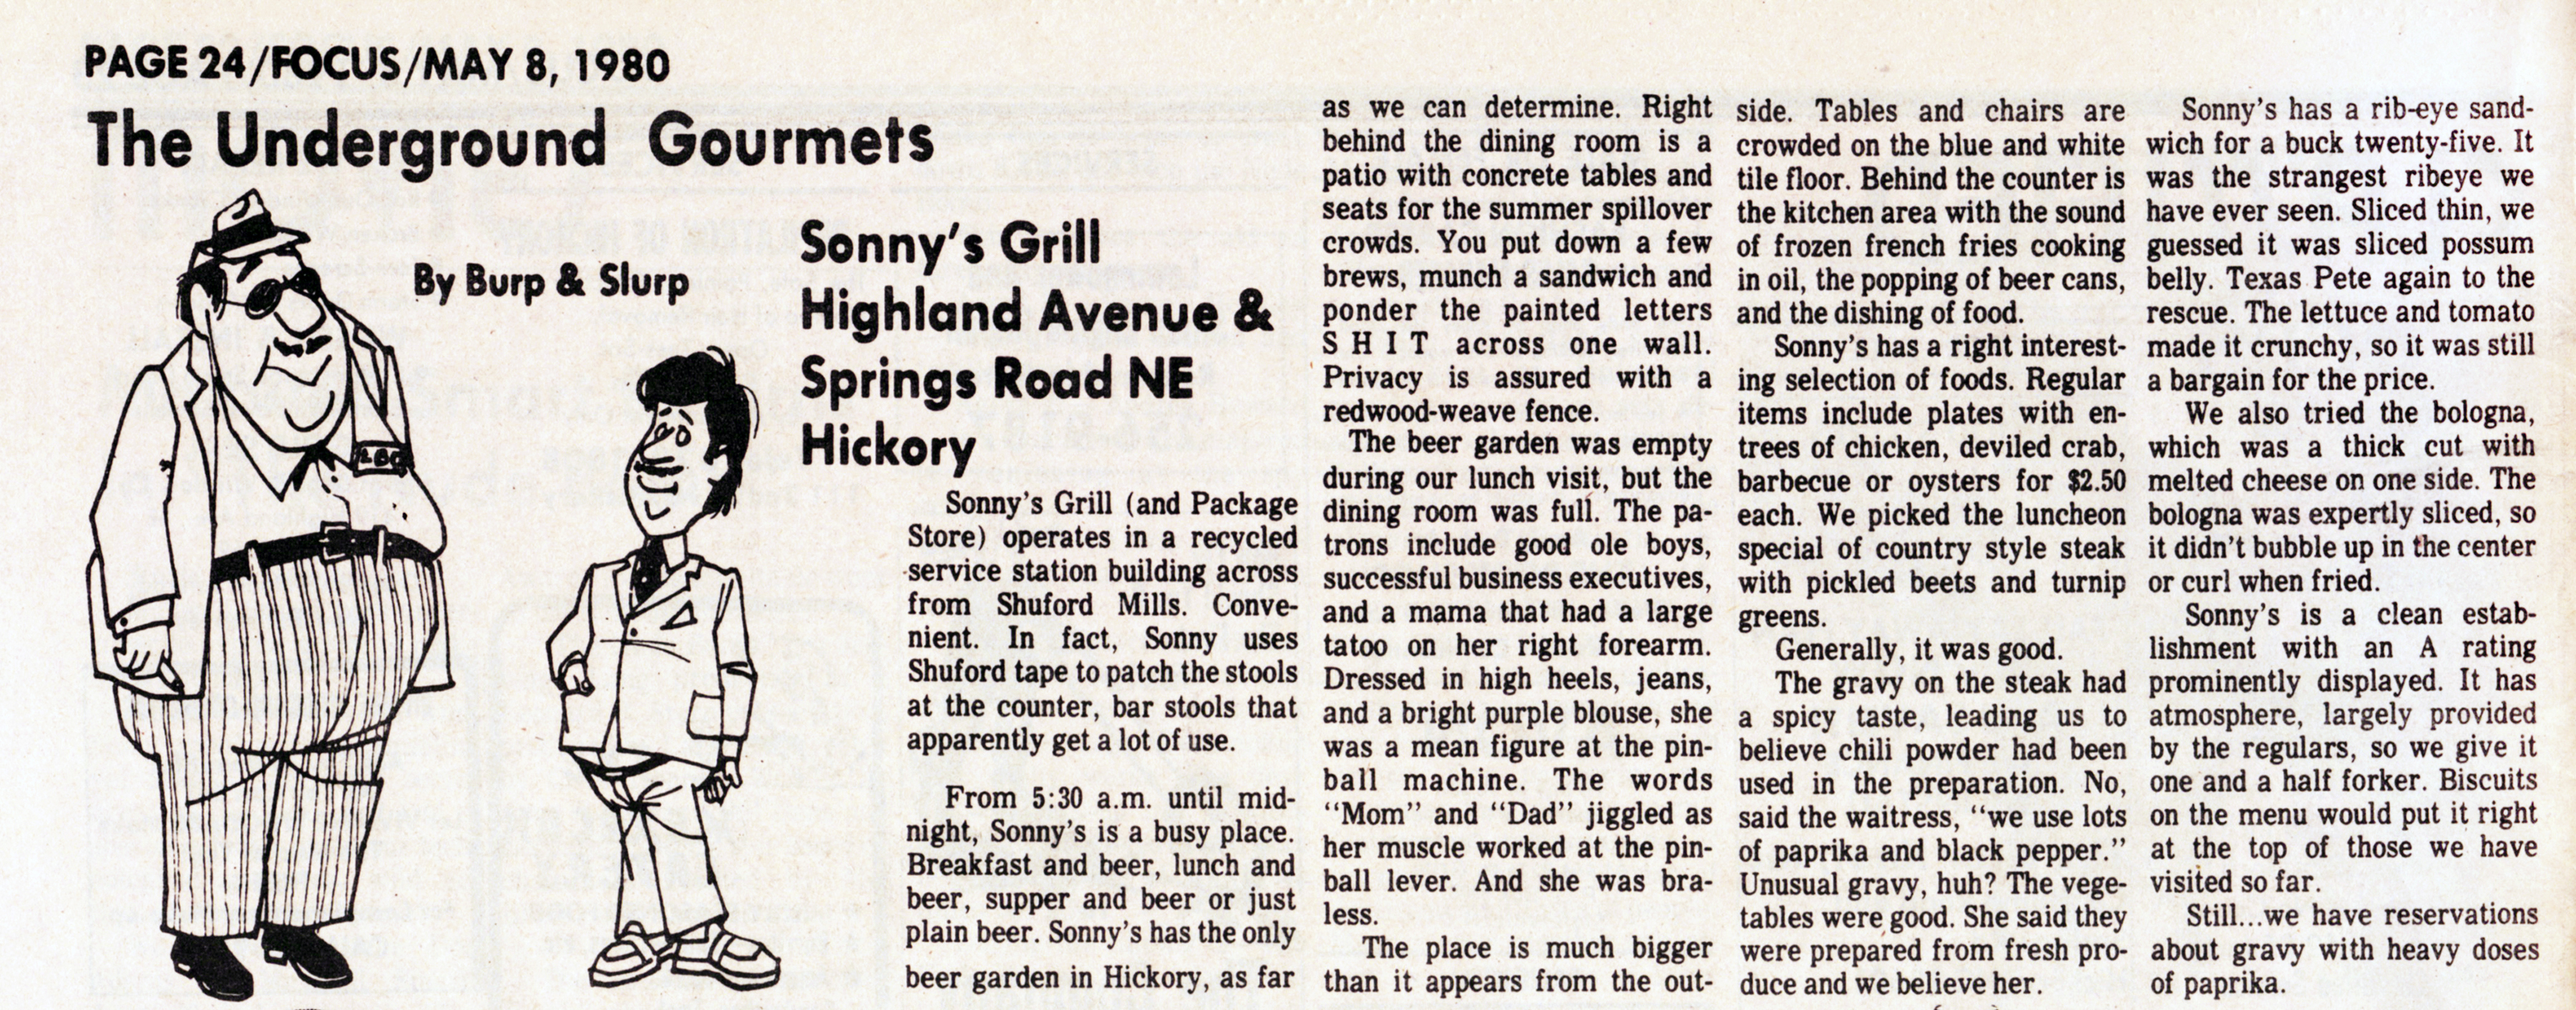 """The Underground Gourmets"" Column by Burp & Slurp published May 8, 1980."